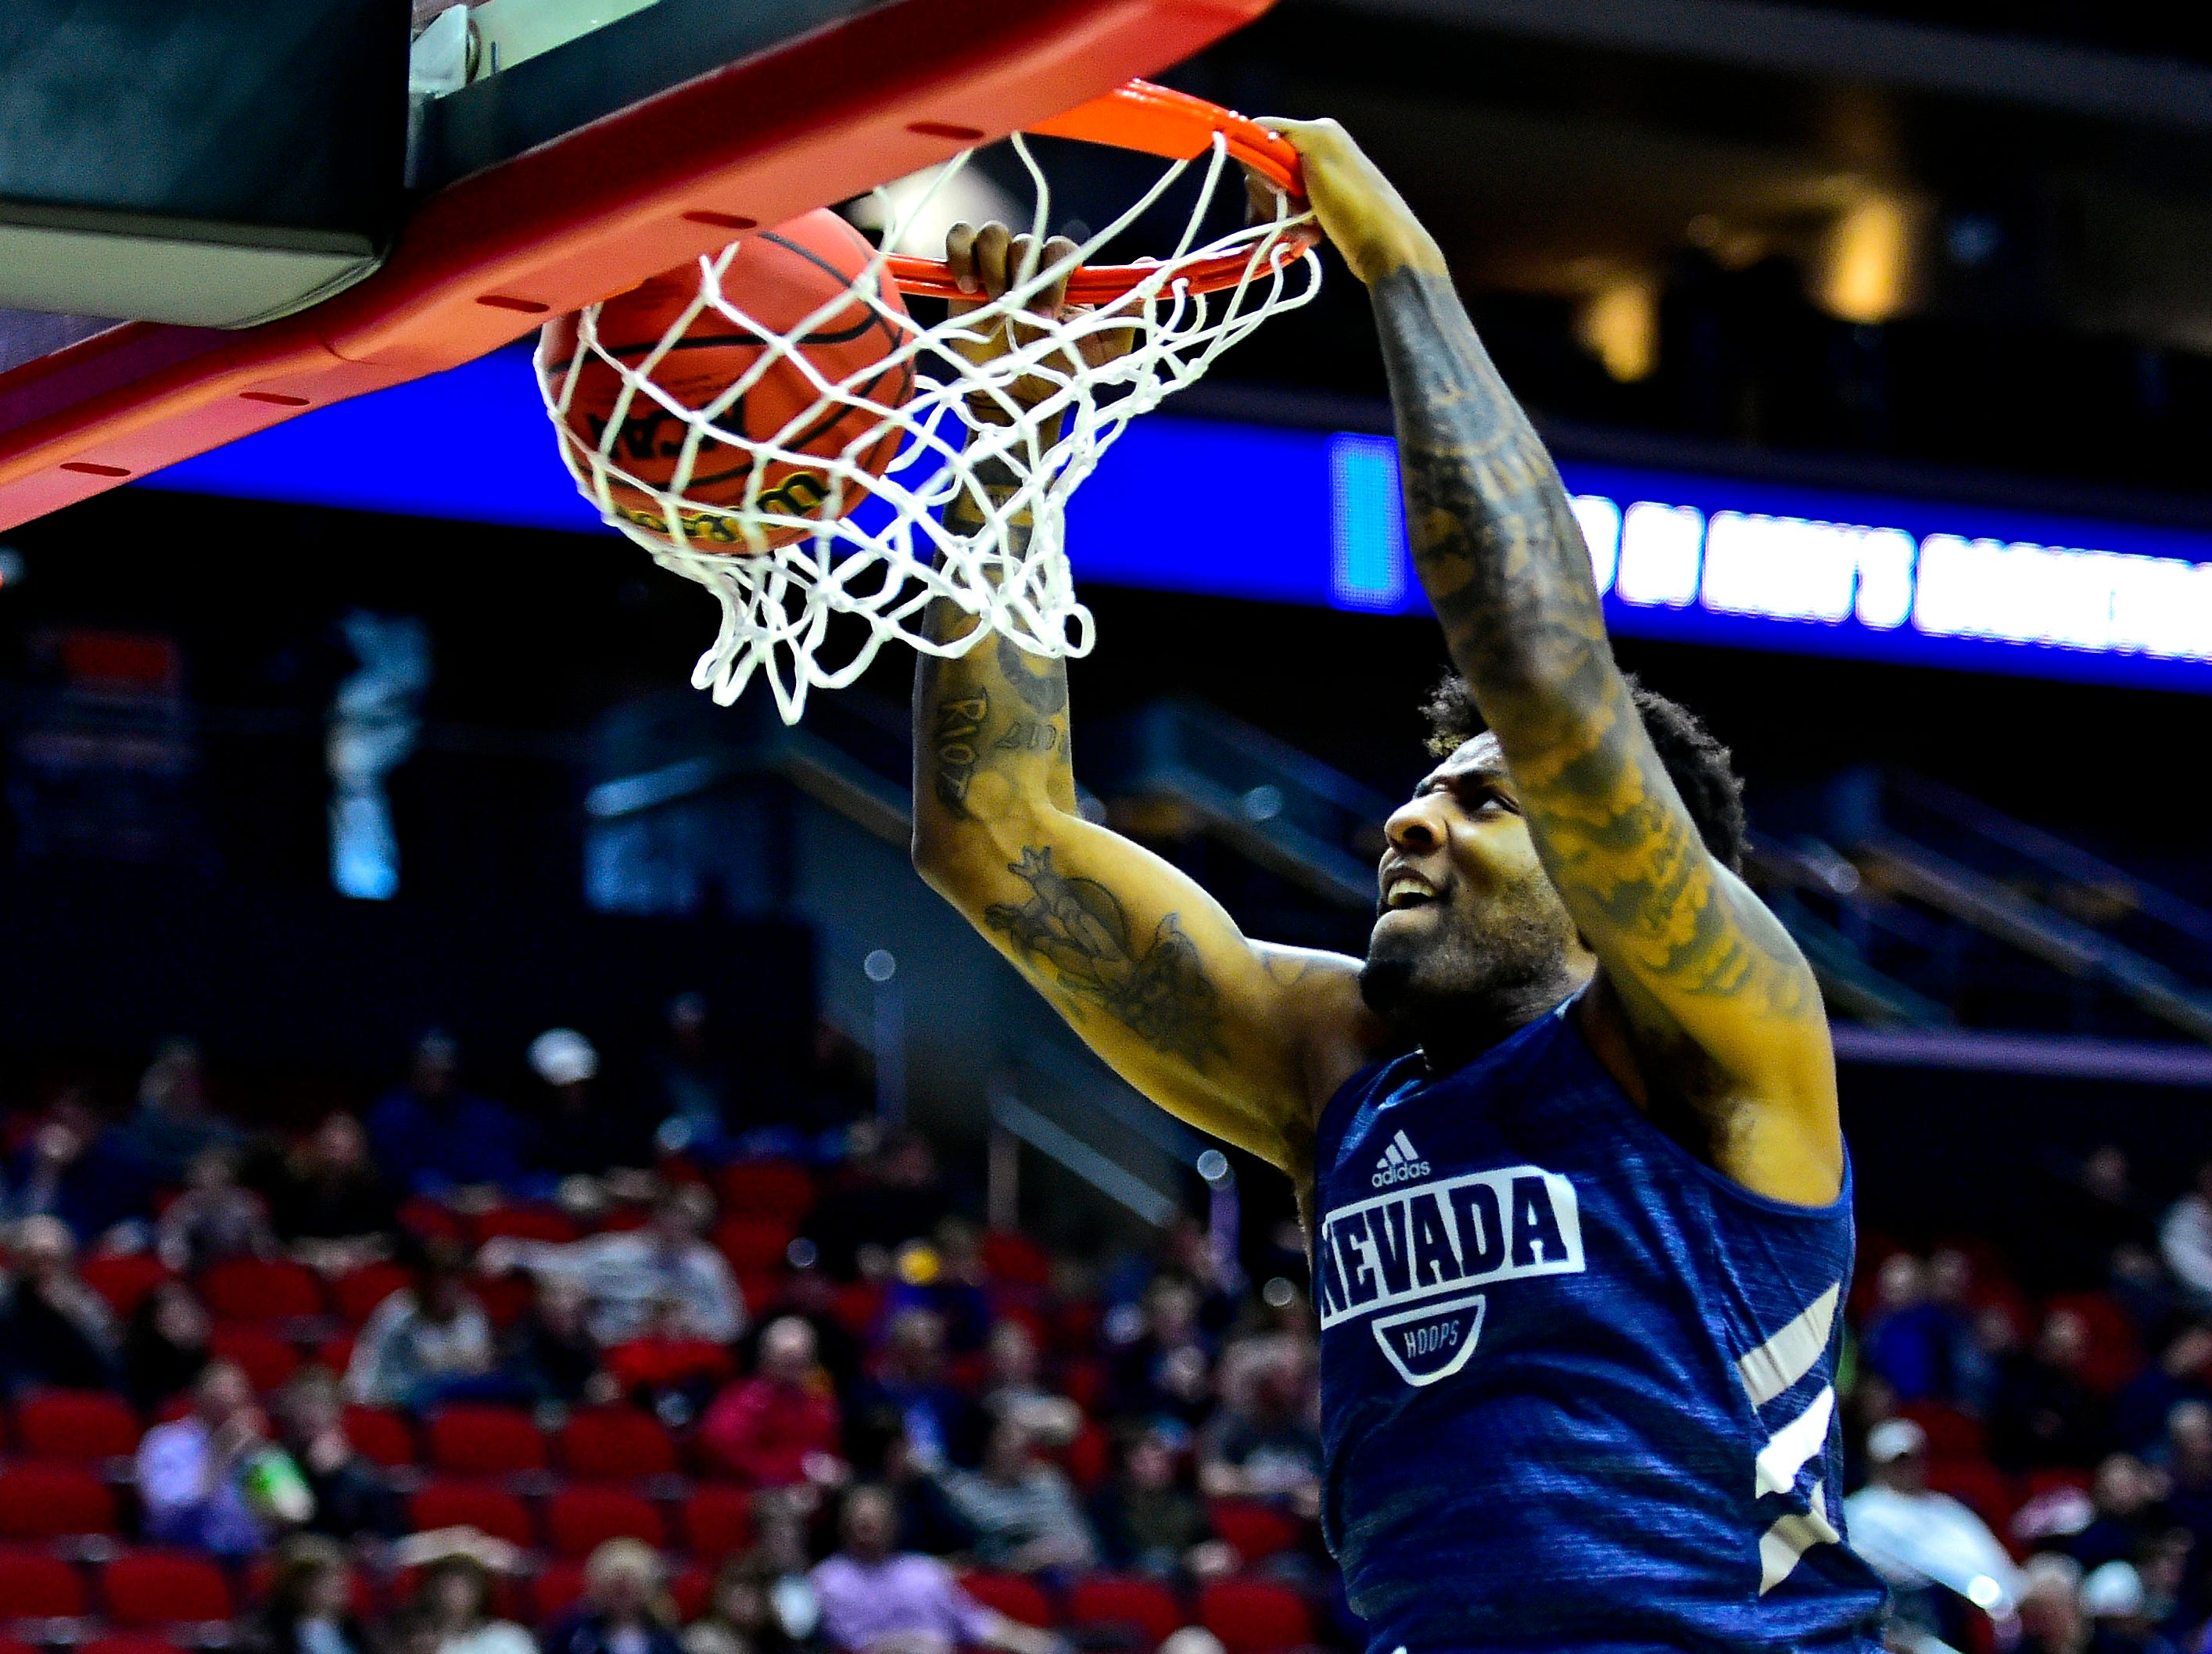 Mar 20, 2019; Des Moines, IA, USA; Nevada Wolf Pack forward Jordan Caroline (24) dunks the ball during practice before the first round of the 2019 NCAA Tournament at Wells Fargo Arena. Mandatory Credit: Jeffrey Becker-USA TODAY Sports